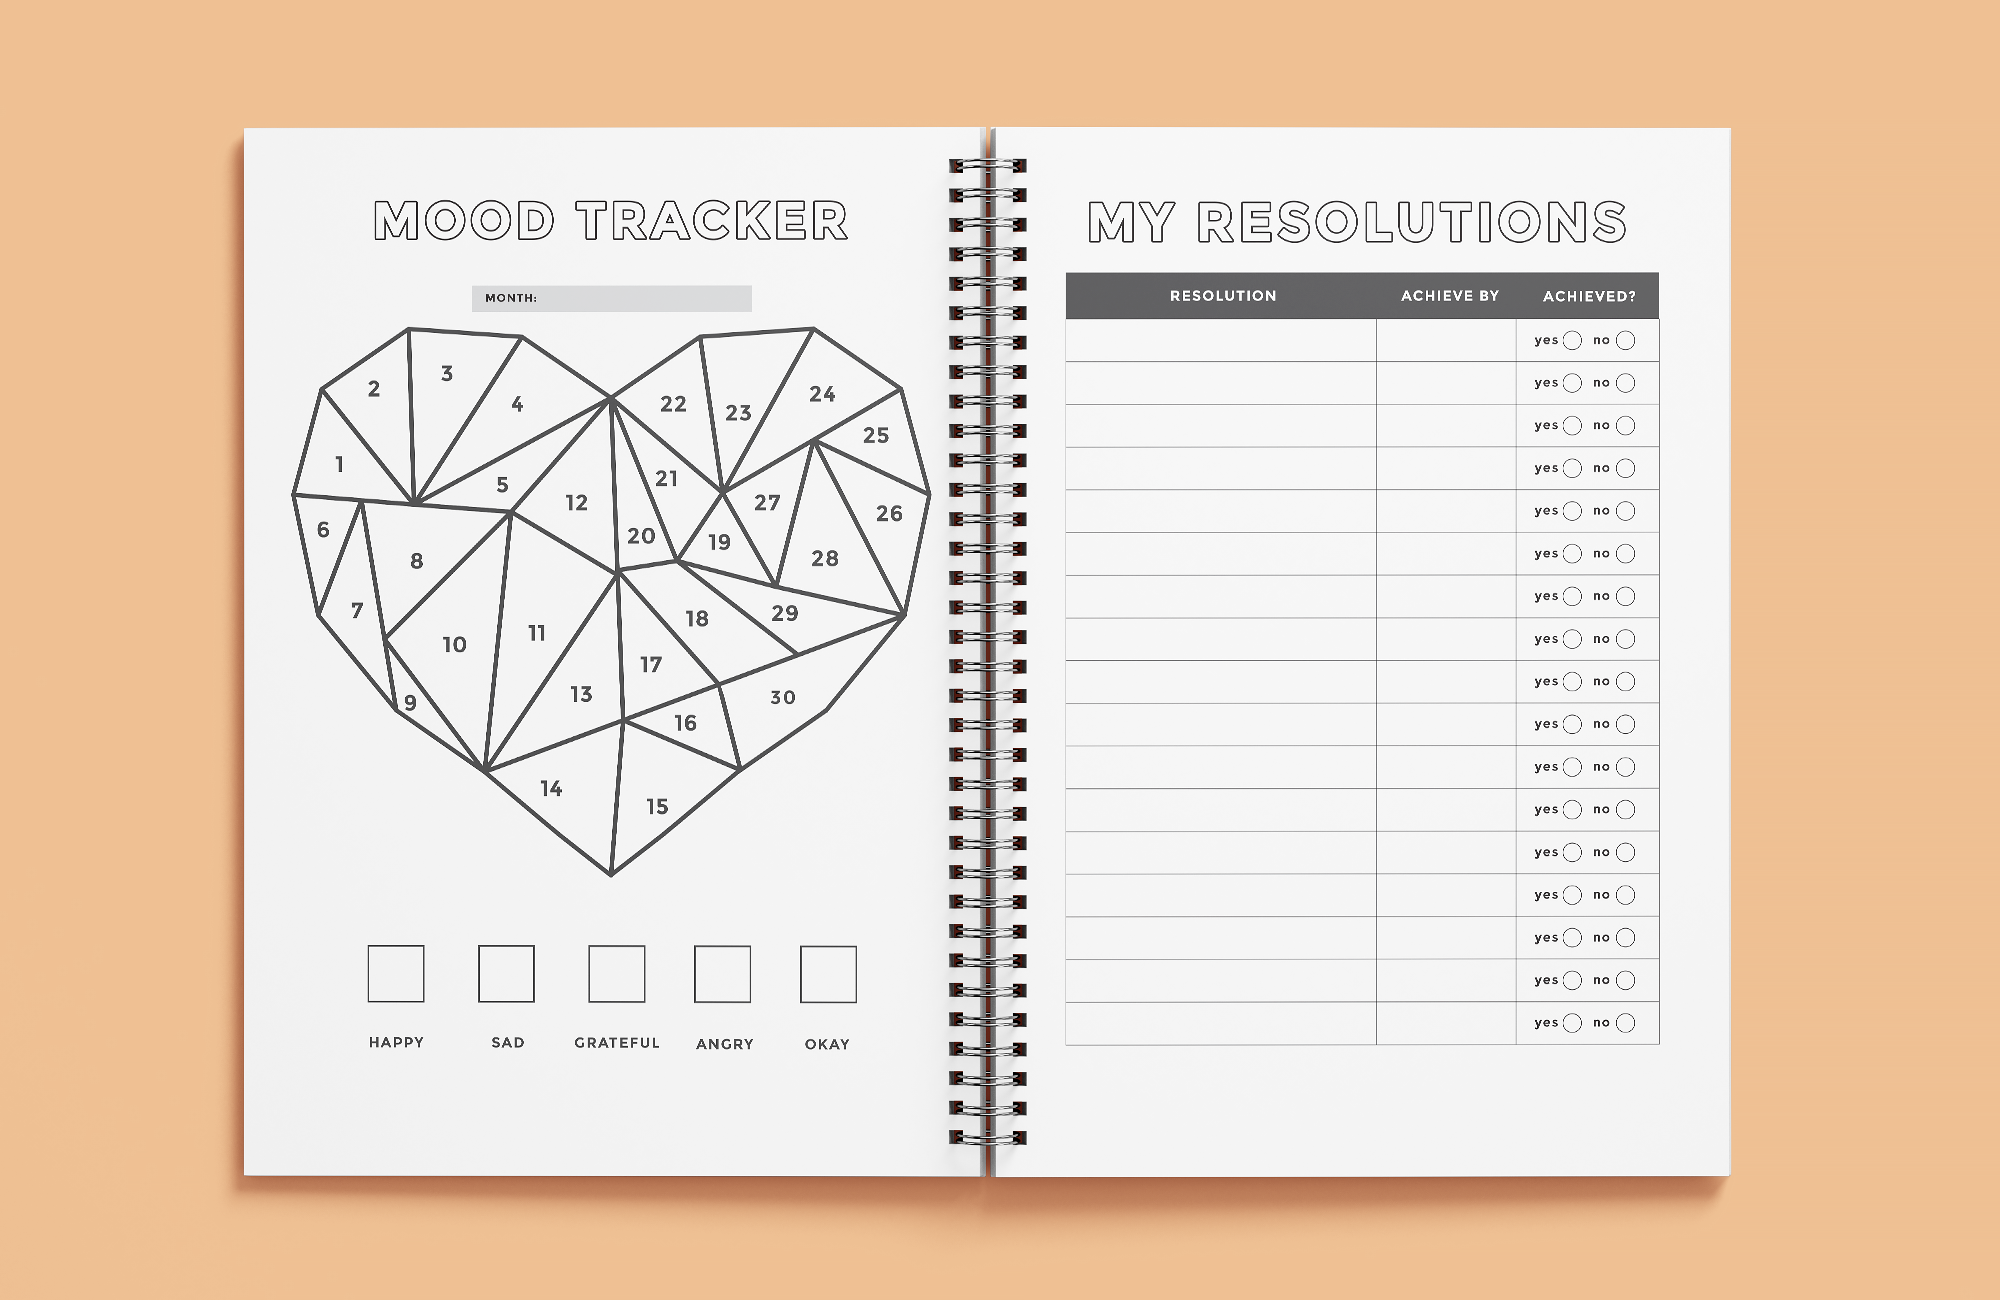 mood tracker and resolutions page